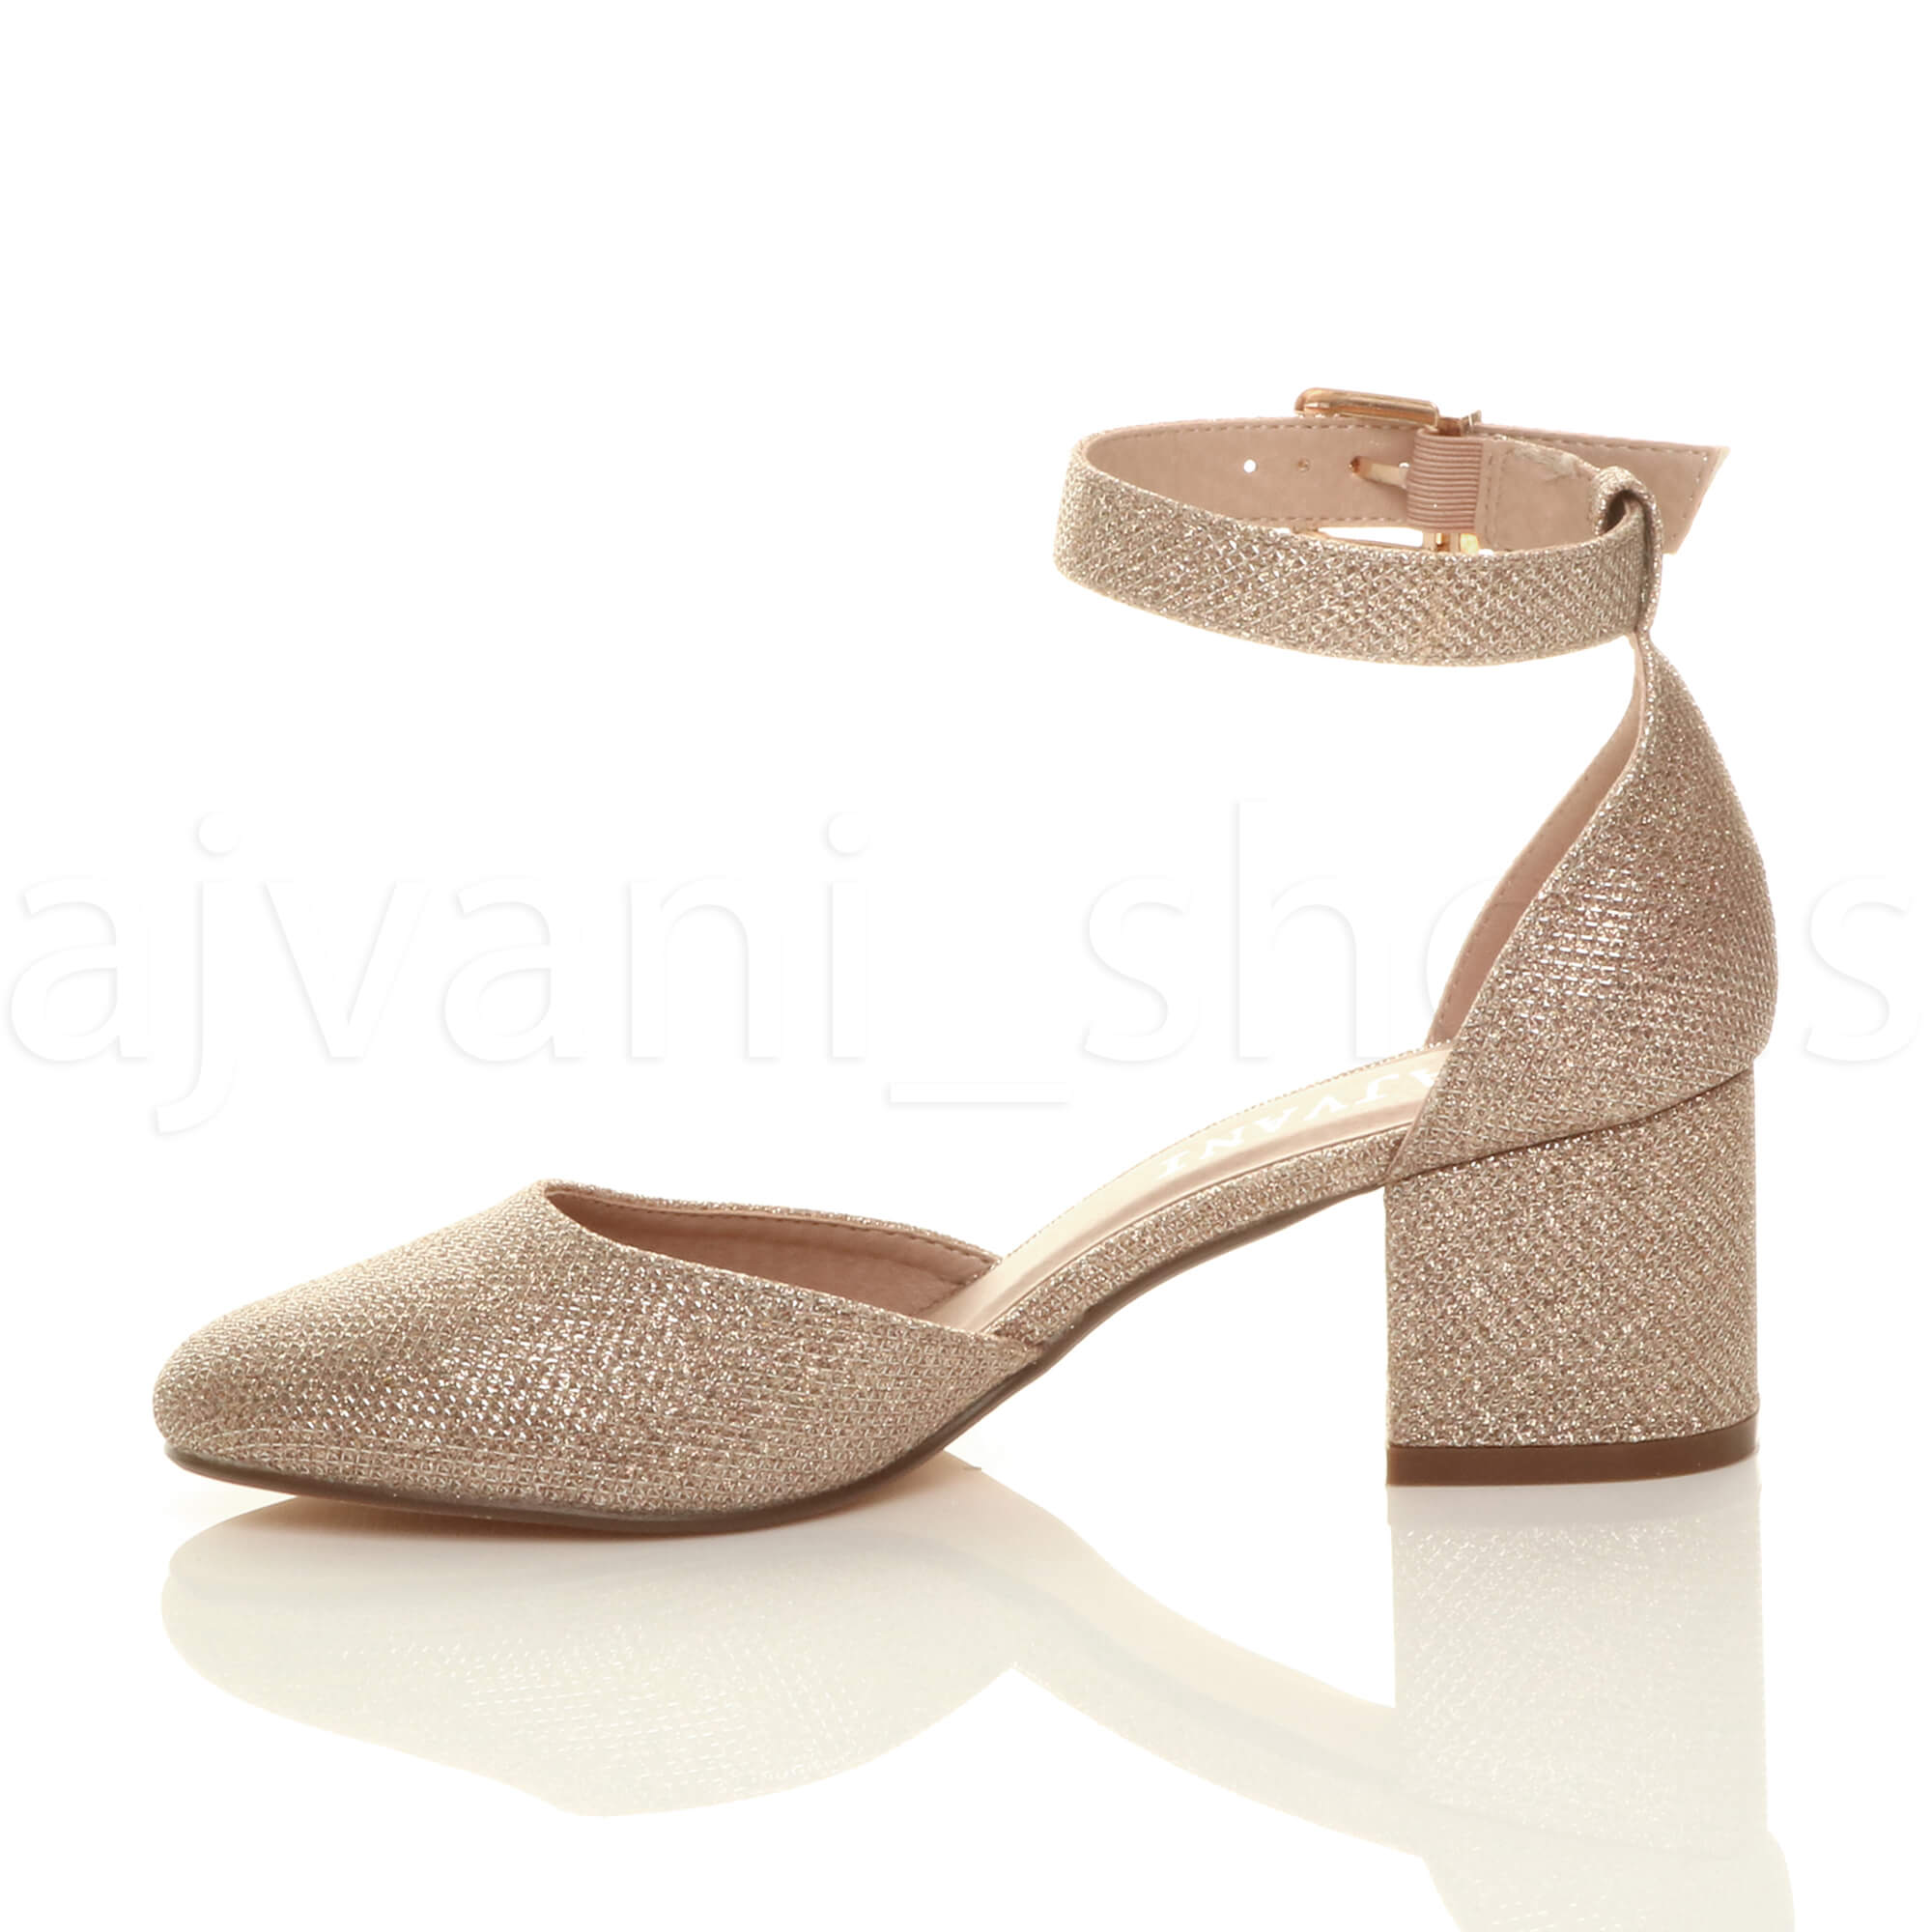 WOMENS-LADIES-LOW-MID-BLOCK-HEEL-ANKLE-STRAP-MARY-JANE-COURT-SHOES-SANDALS-SIZE thumbnail 156